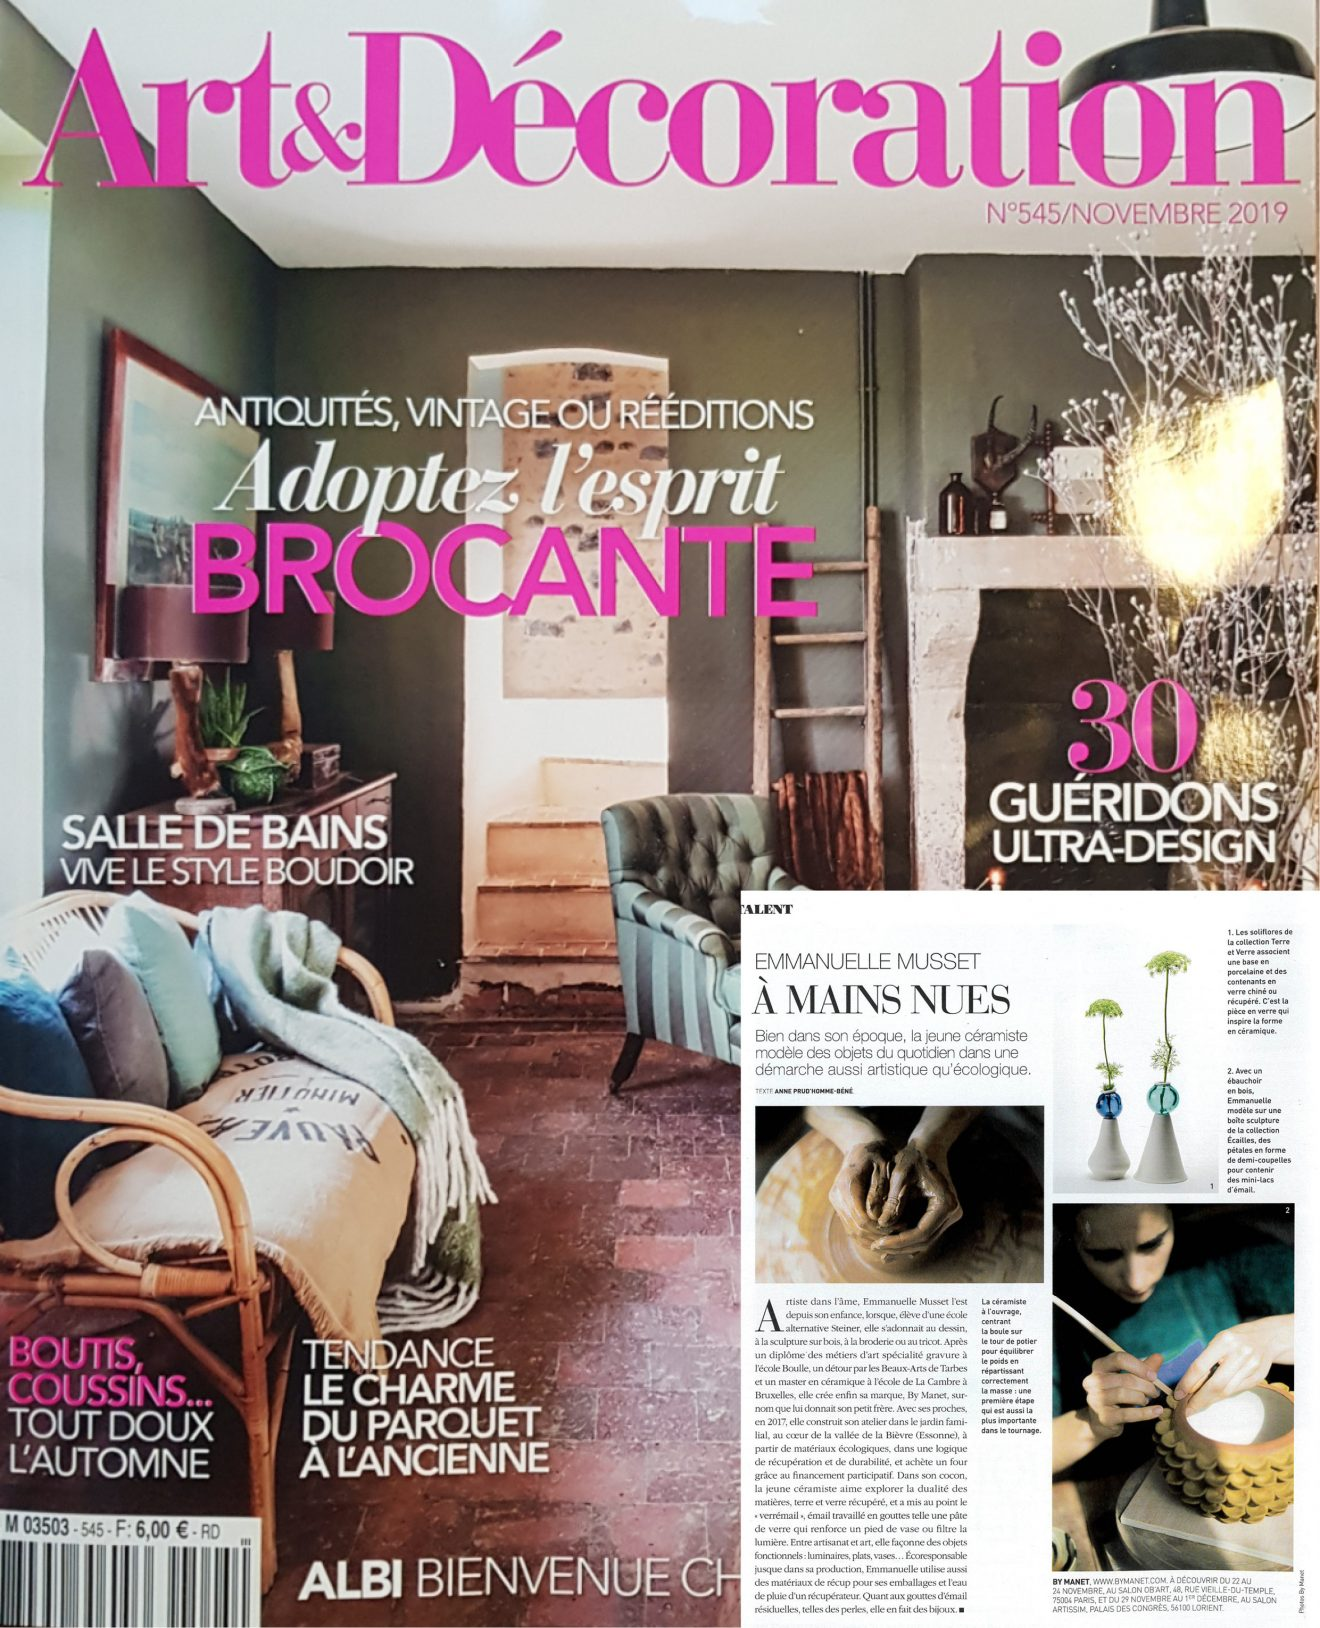 Art-et-decoration-nov-2019-couverture-et-article-1320×1628